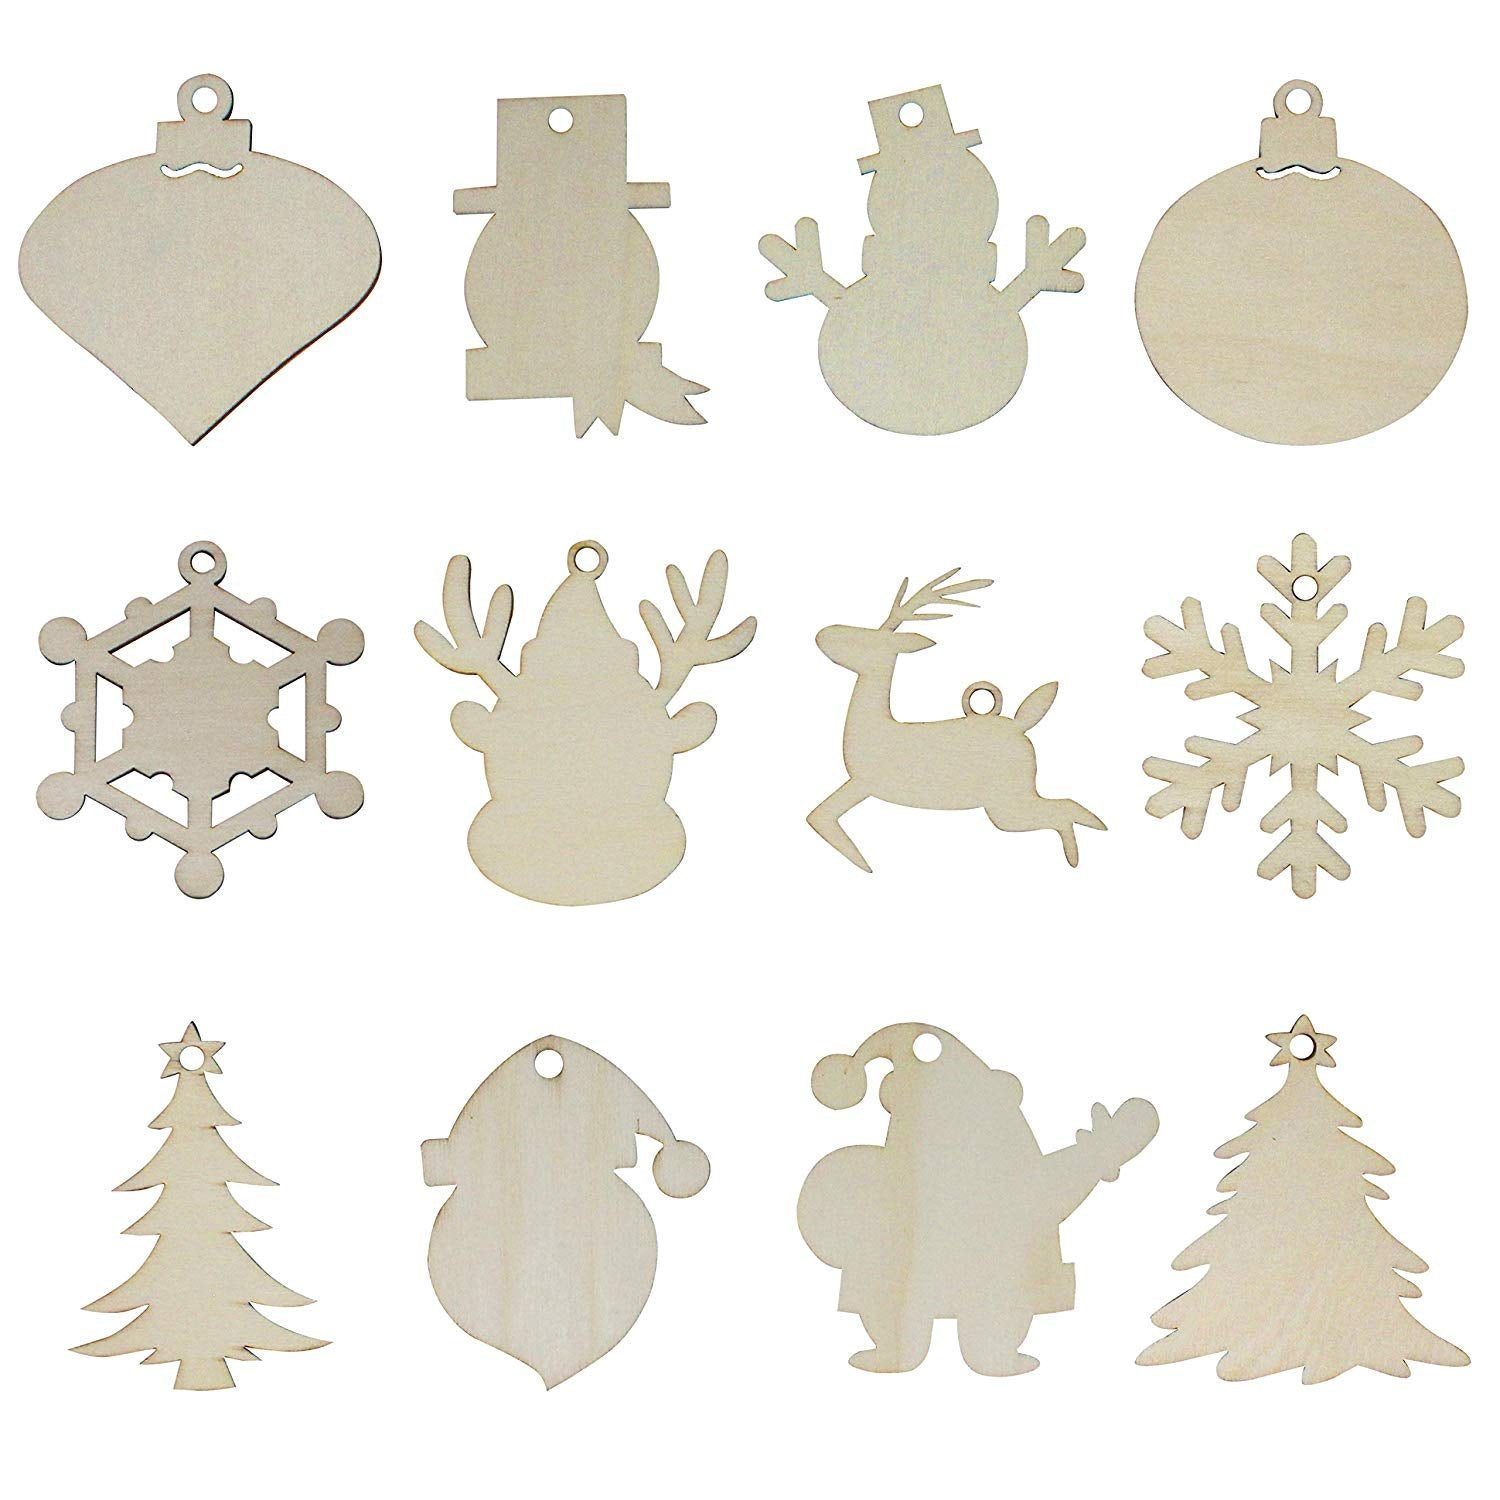 48 Piece Wooden Christmas Ornaments DIY Craft Kit